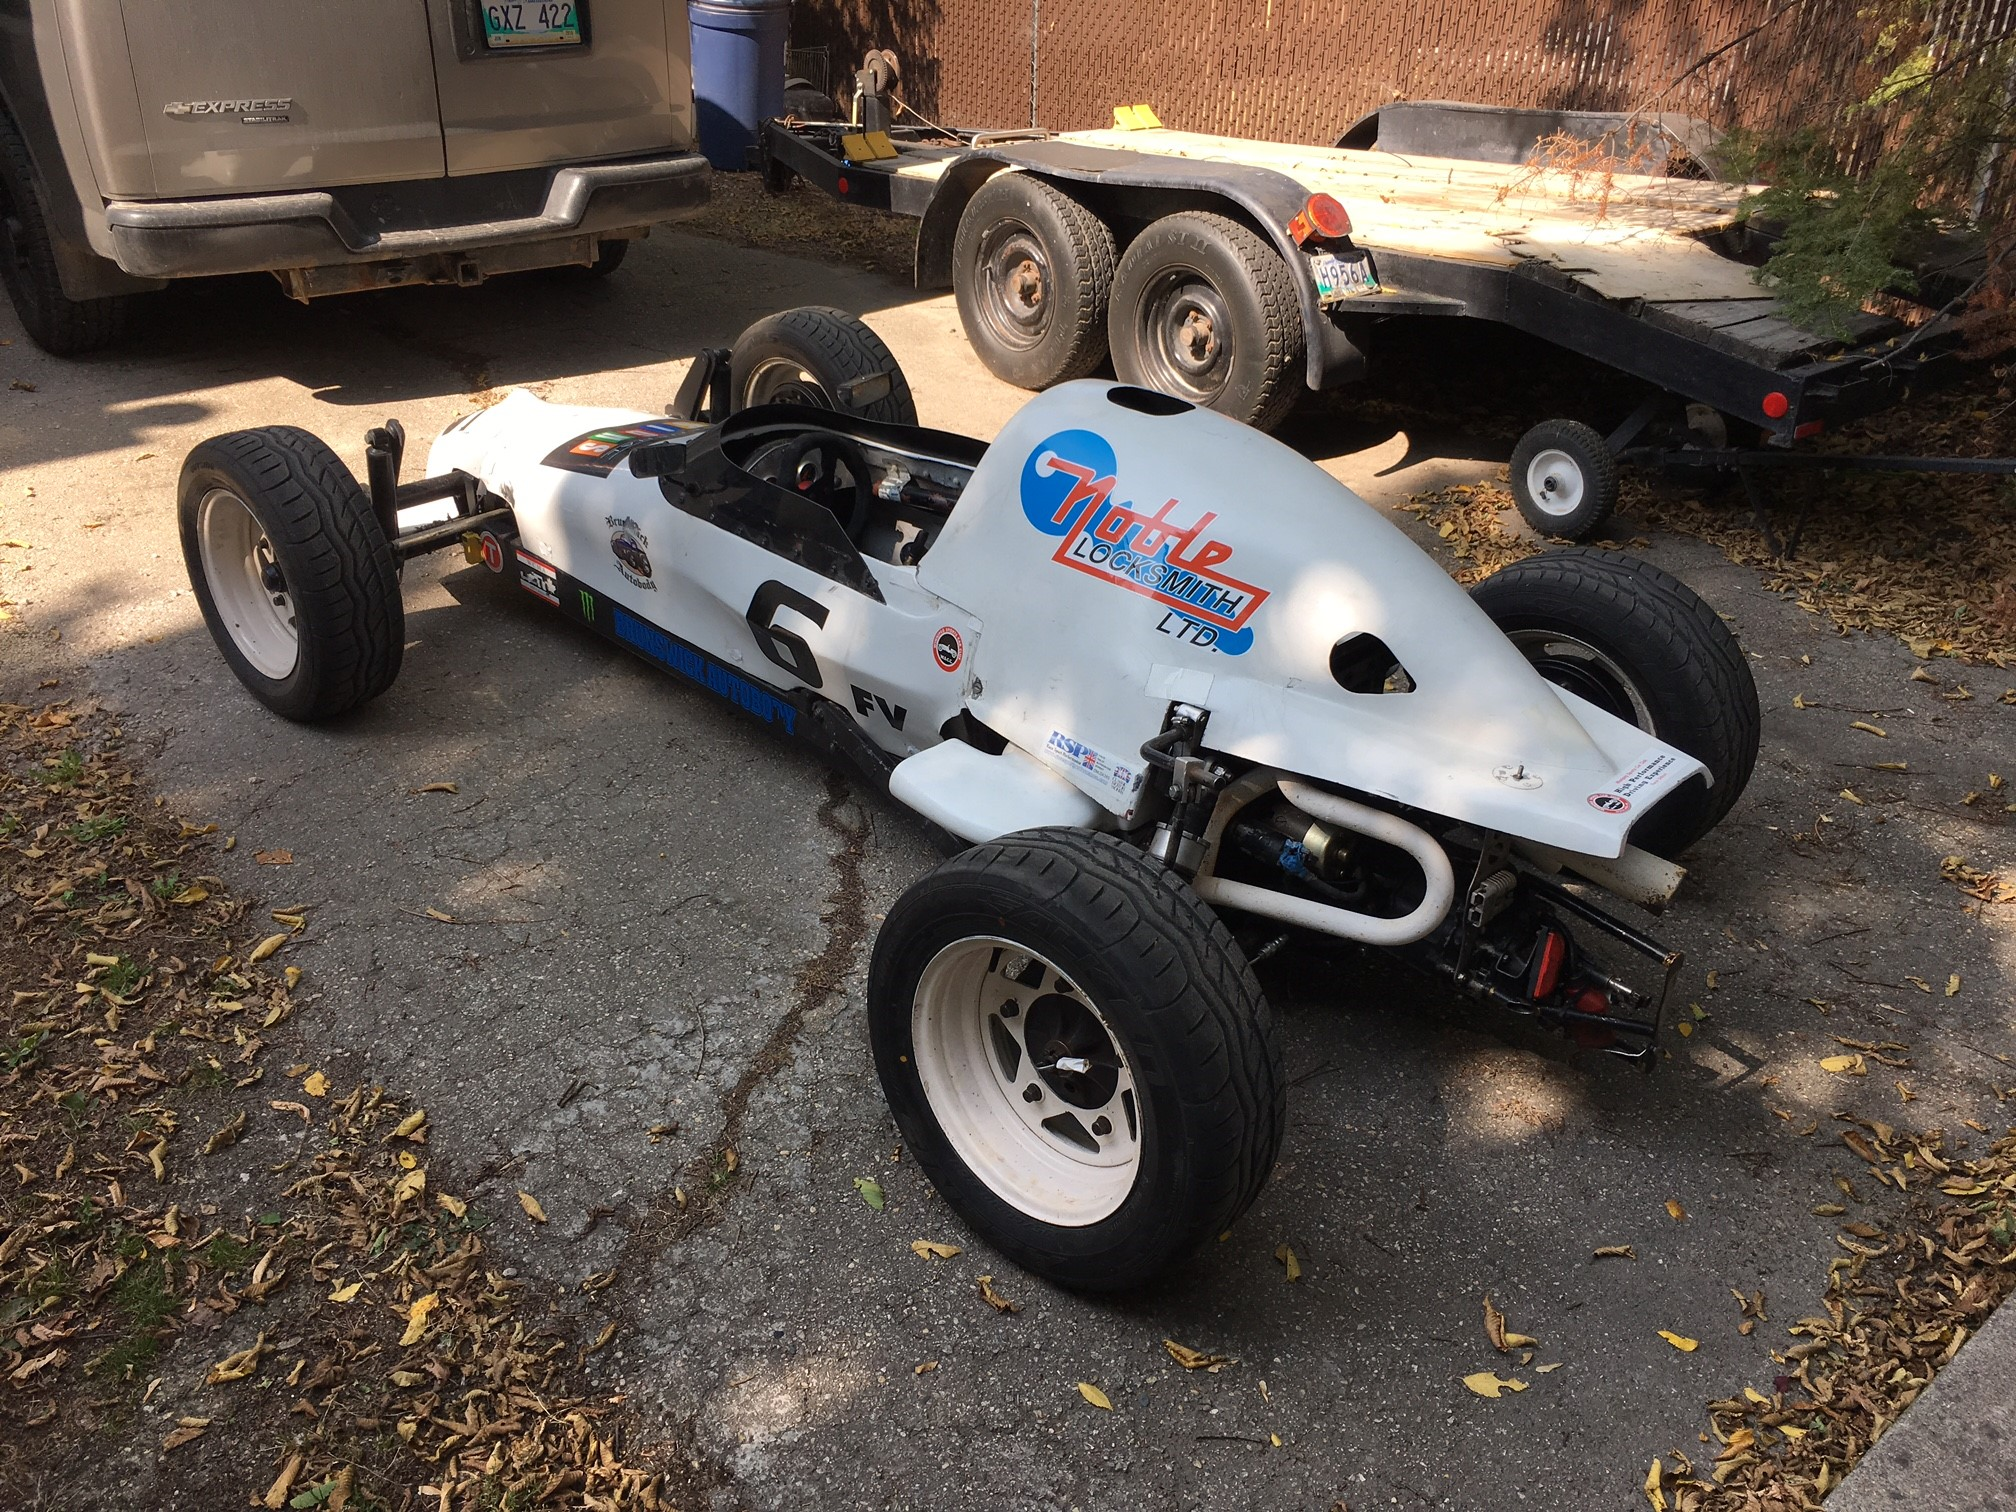 Cars For Sale In Maine >> 1976 Lynx B Formula Vee Race Car For Sale - $2880